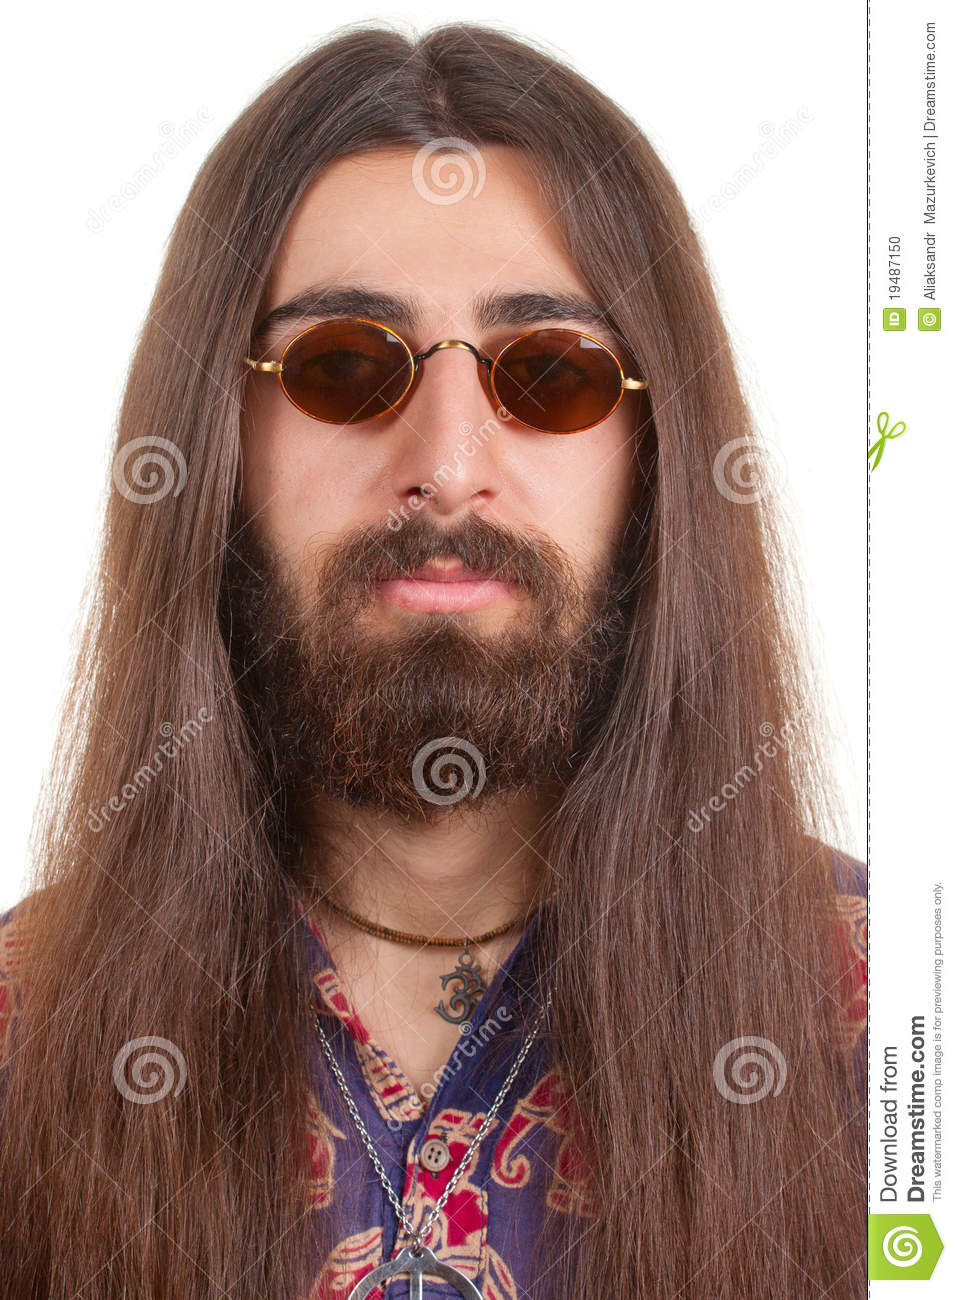 Long-haired Hippie Man Stock Photo - Image: 19487150